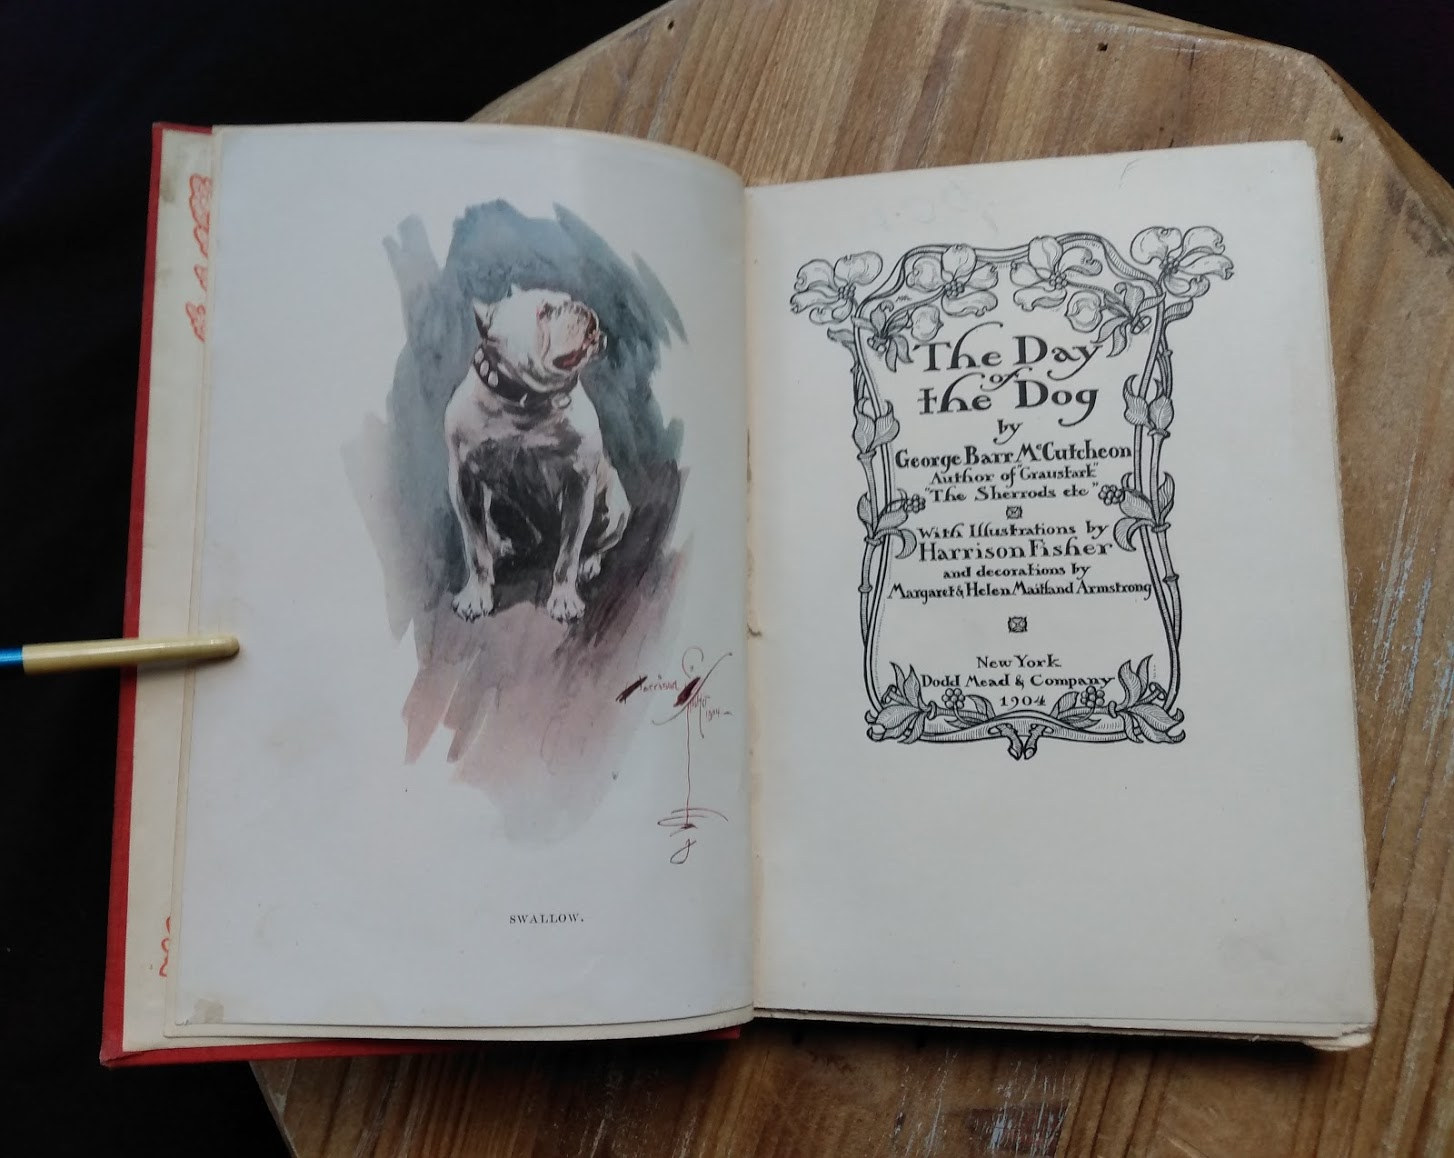 1904 copy of The Day of the Dog by George Barr McCutcheon - First Edition